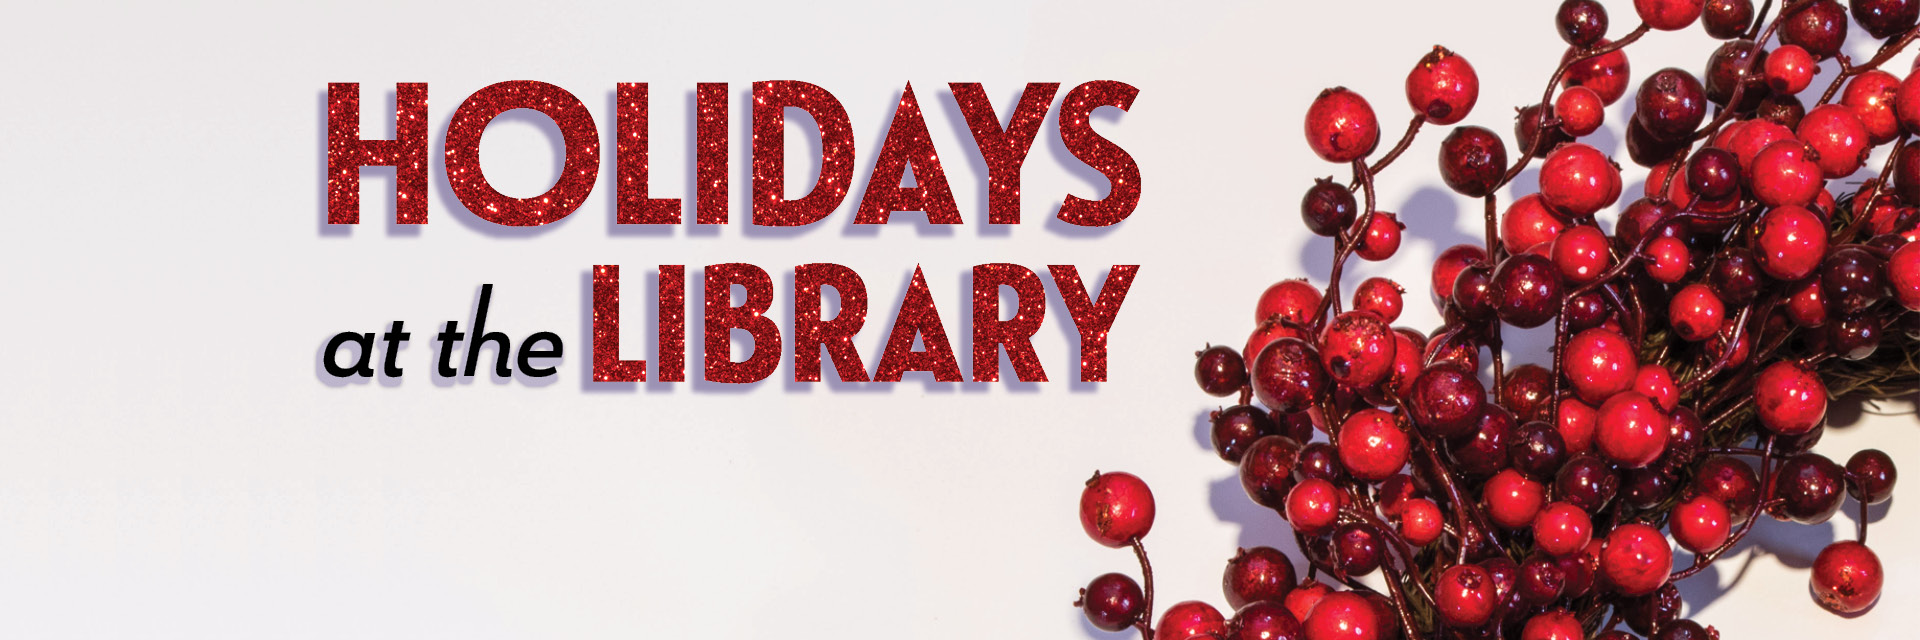 Holidays at the Library, cranberry wreath on white background